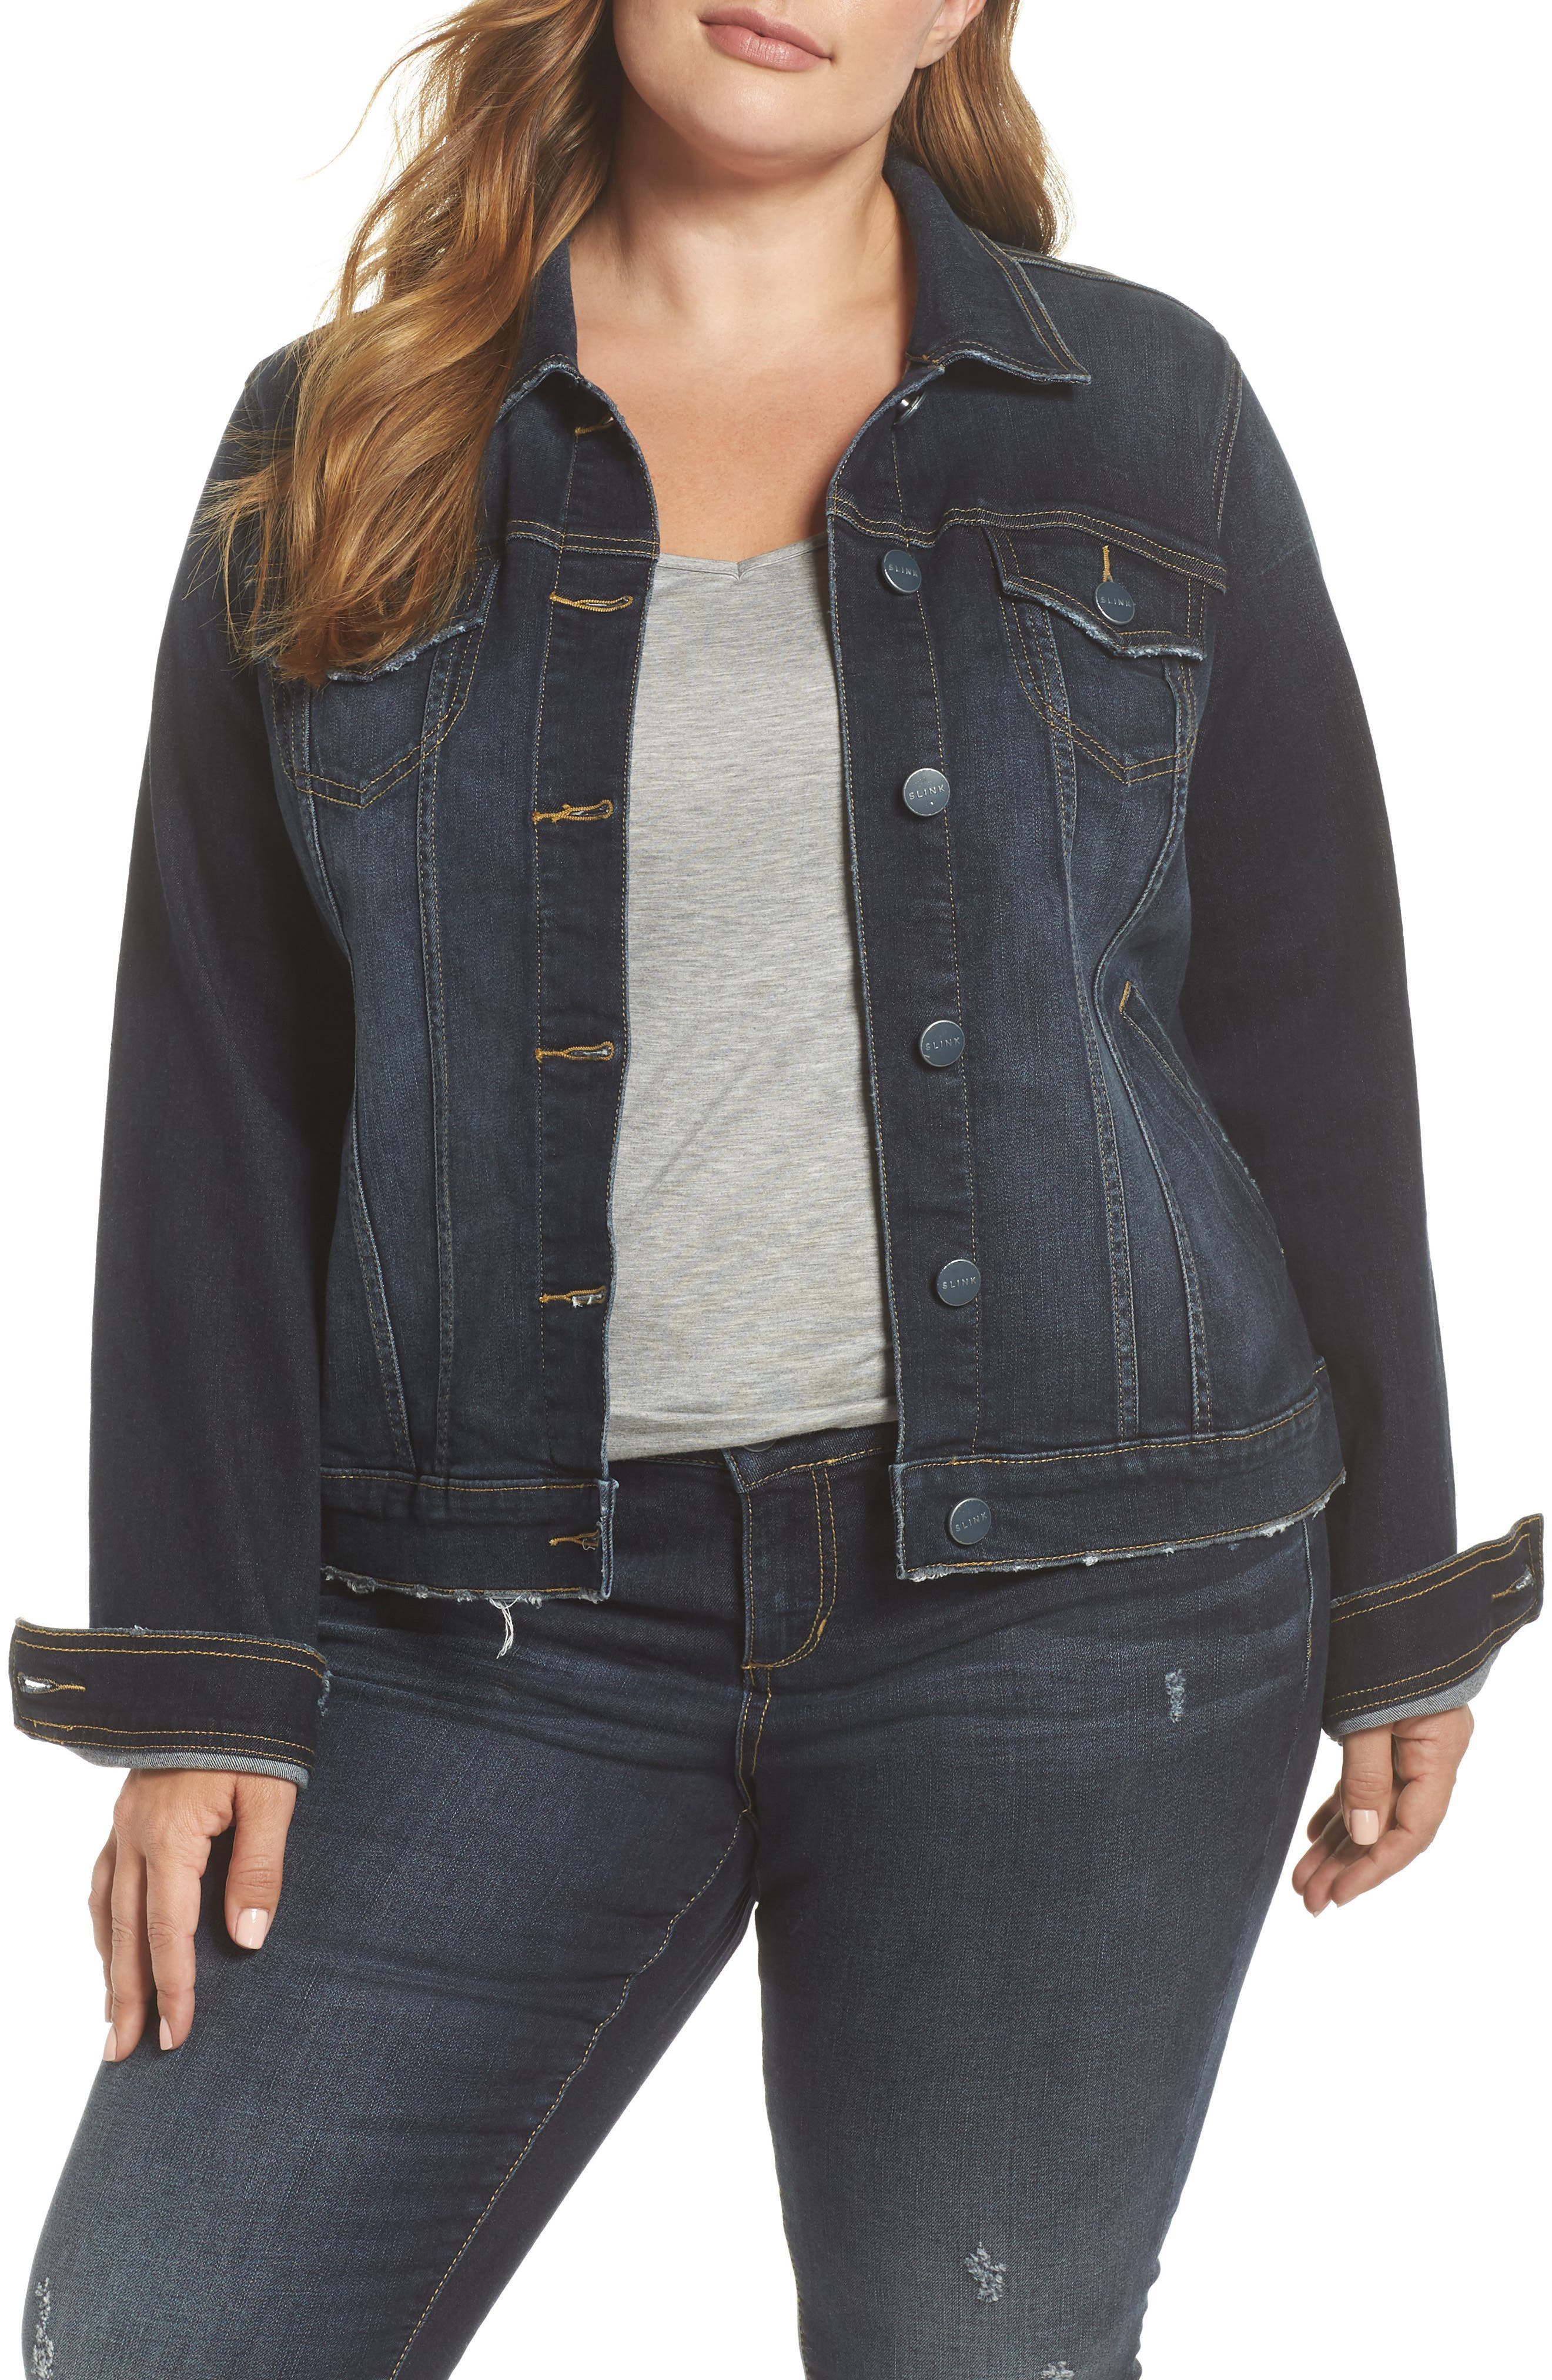 SLINK JEANS, Stretch Denim Jacket, Main thumbnail 1, color, BELLA